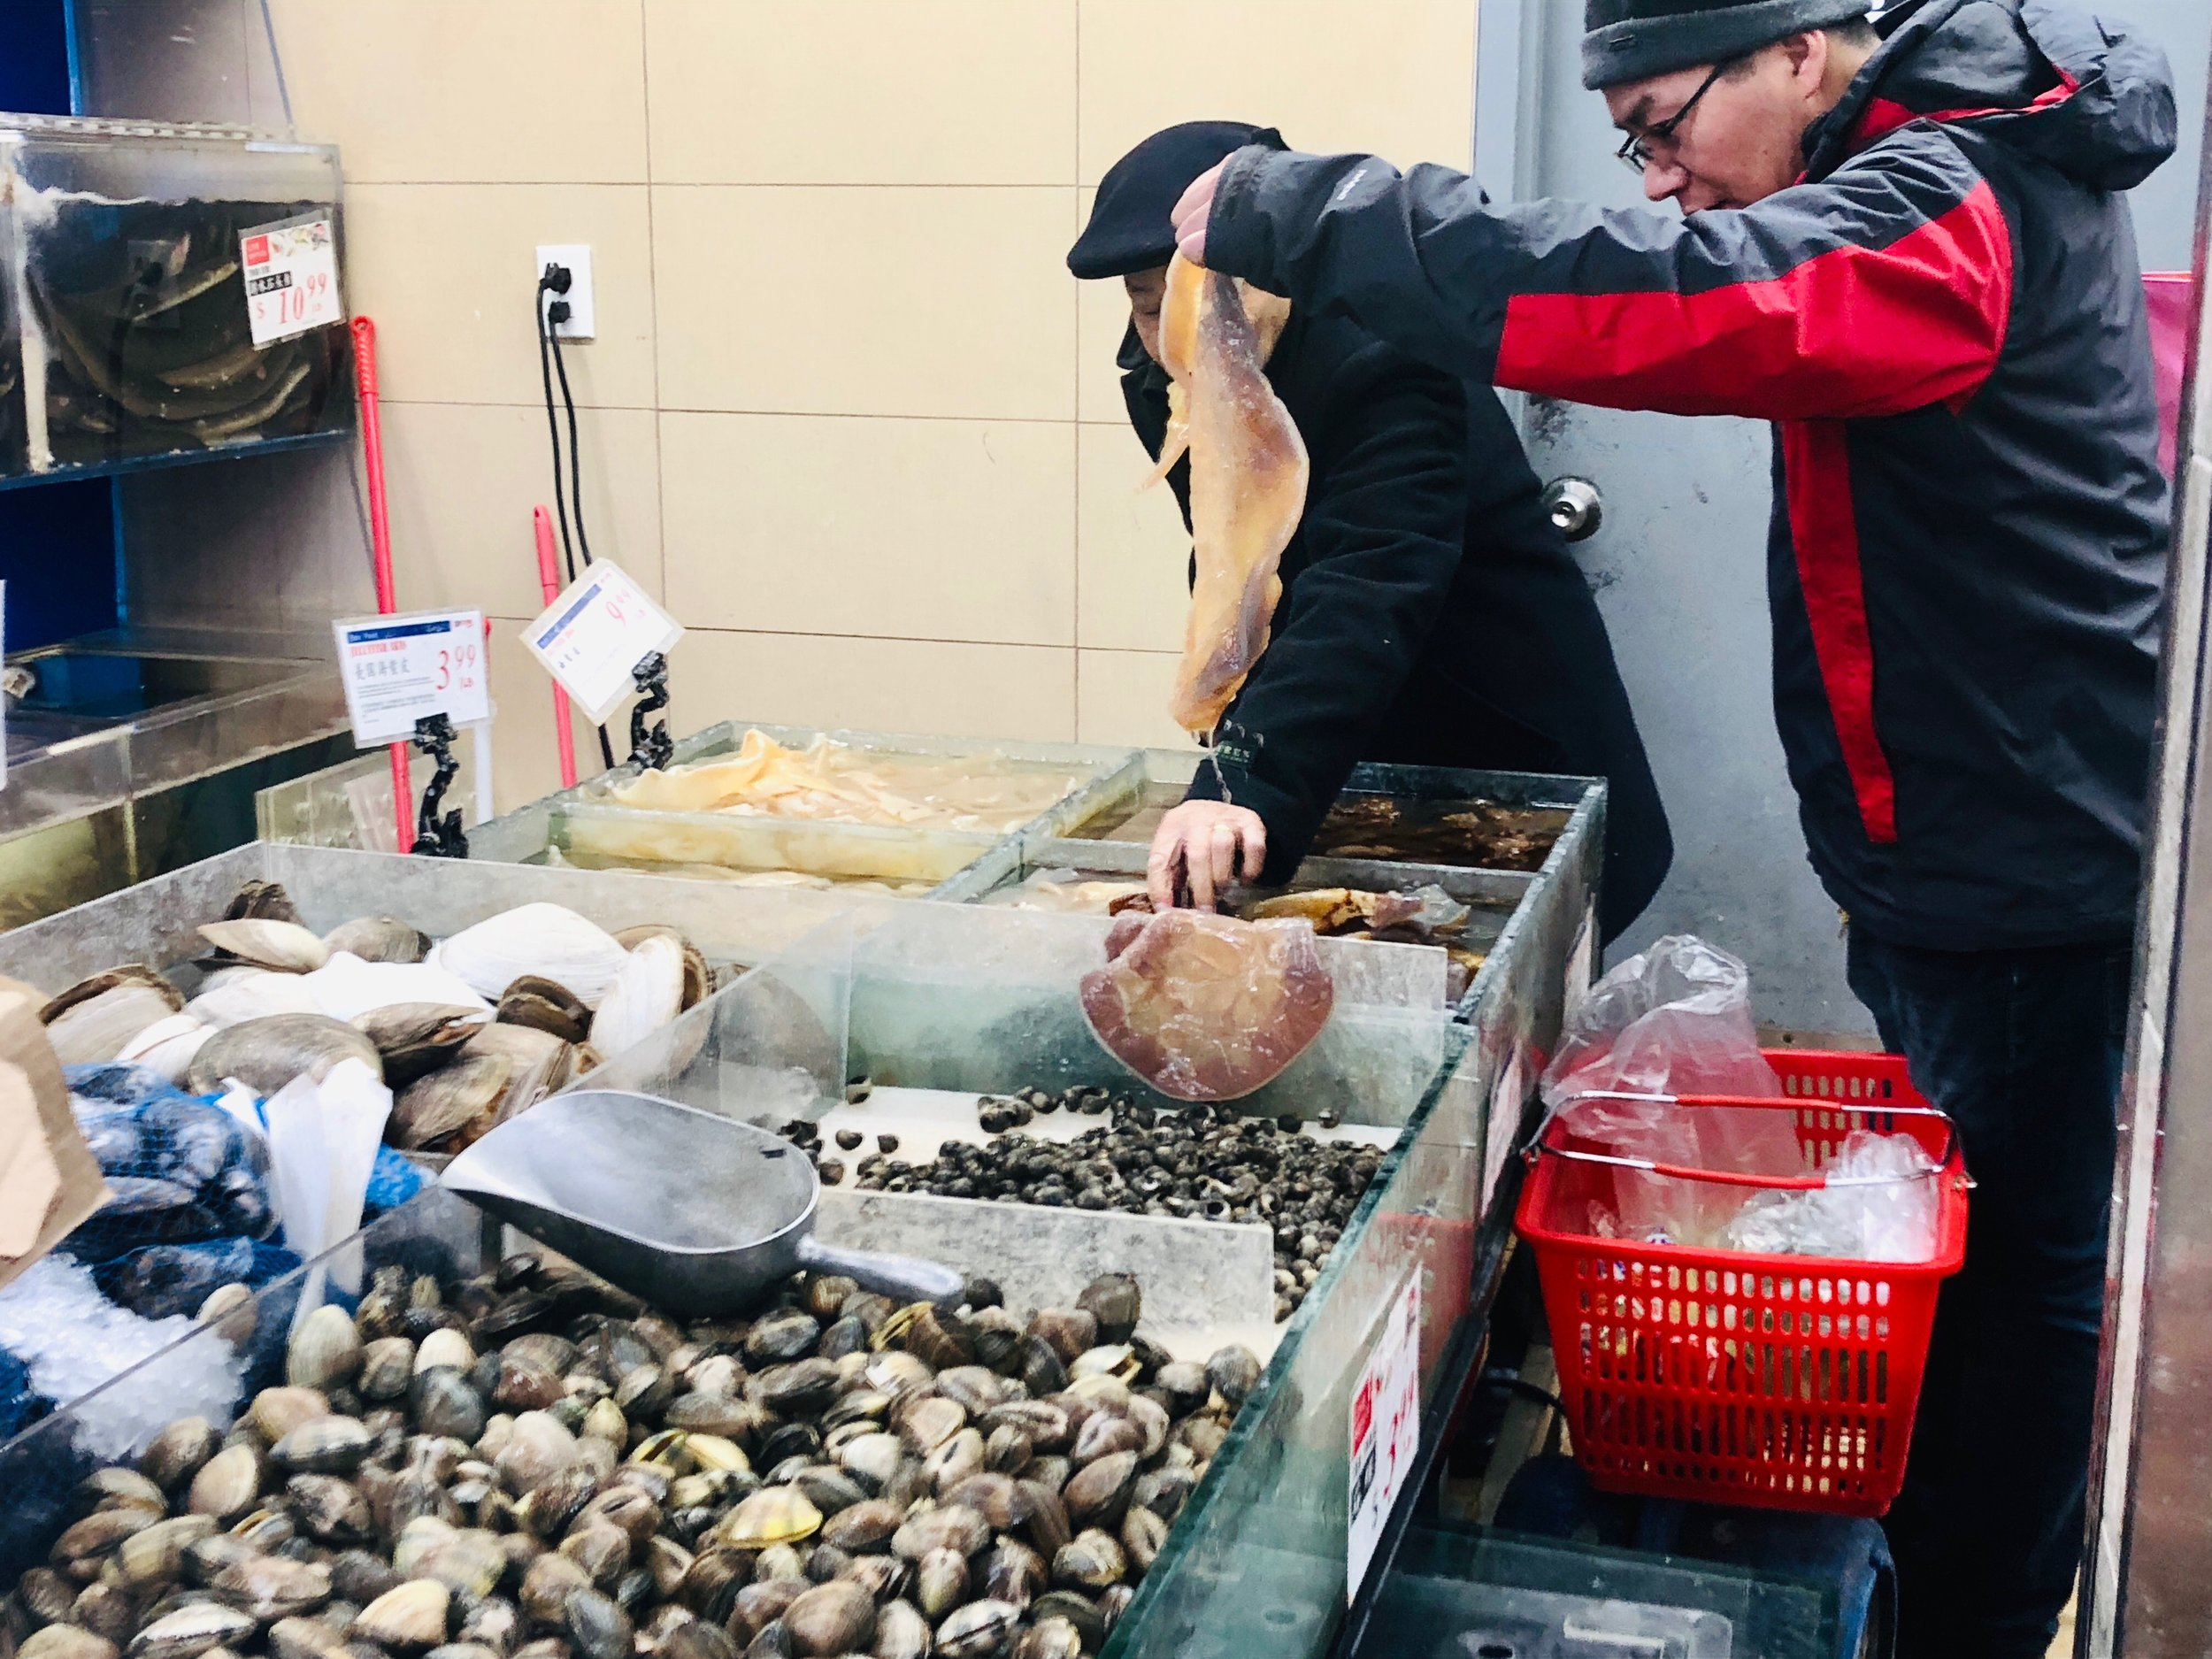 Men investigating a specimen for their jellyfish purchase. Flushing, Queens.